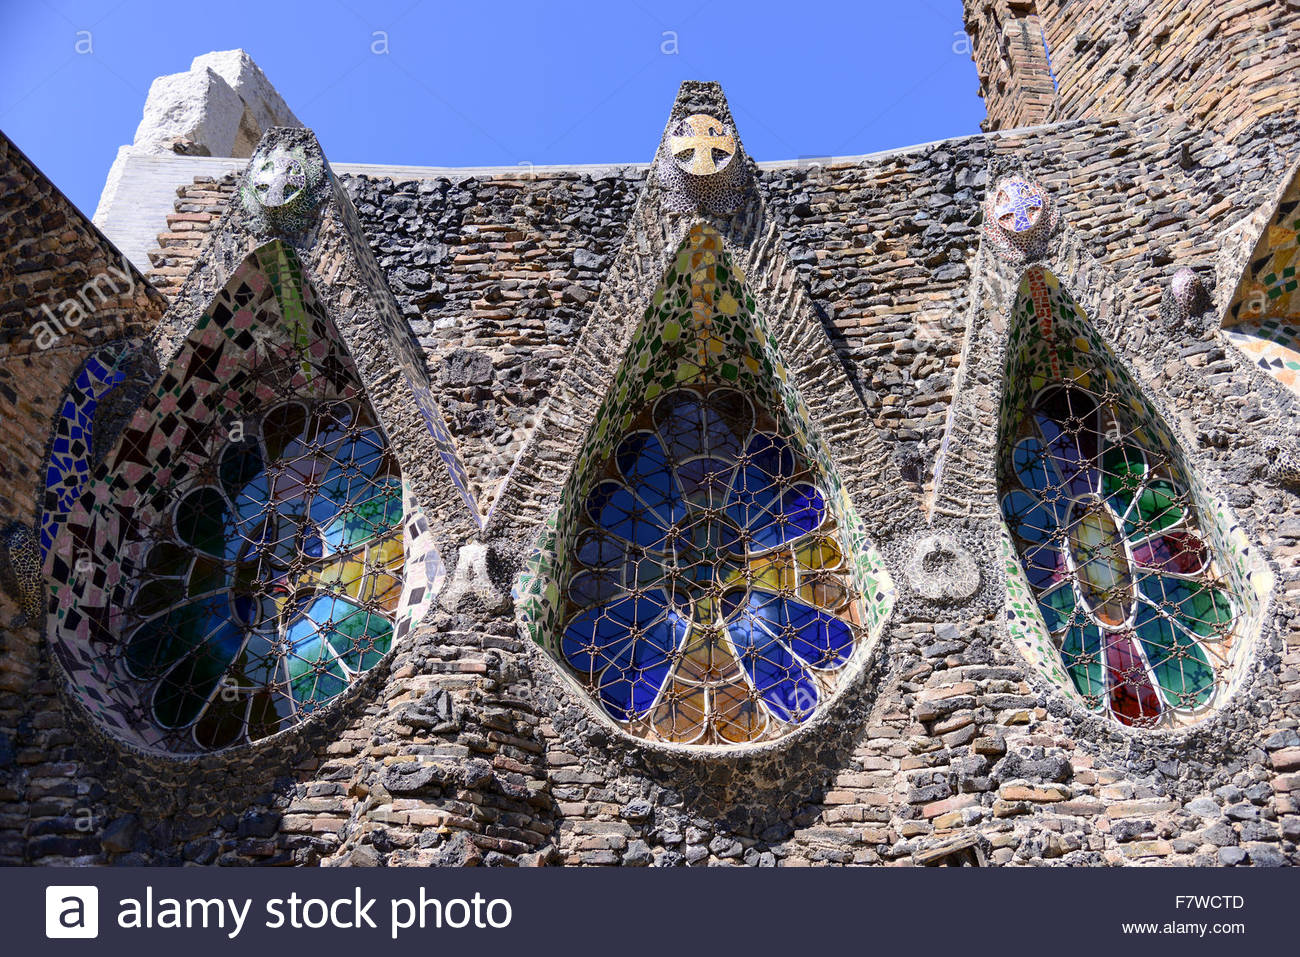 Disseny Hub Barcelona, Colonia Guell, Barcelona, Spain Stock Photo, Royalty Free Image ...